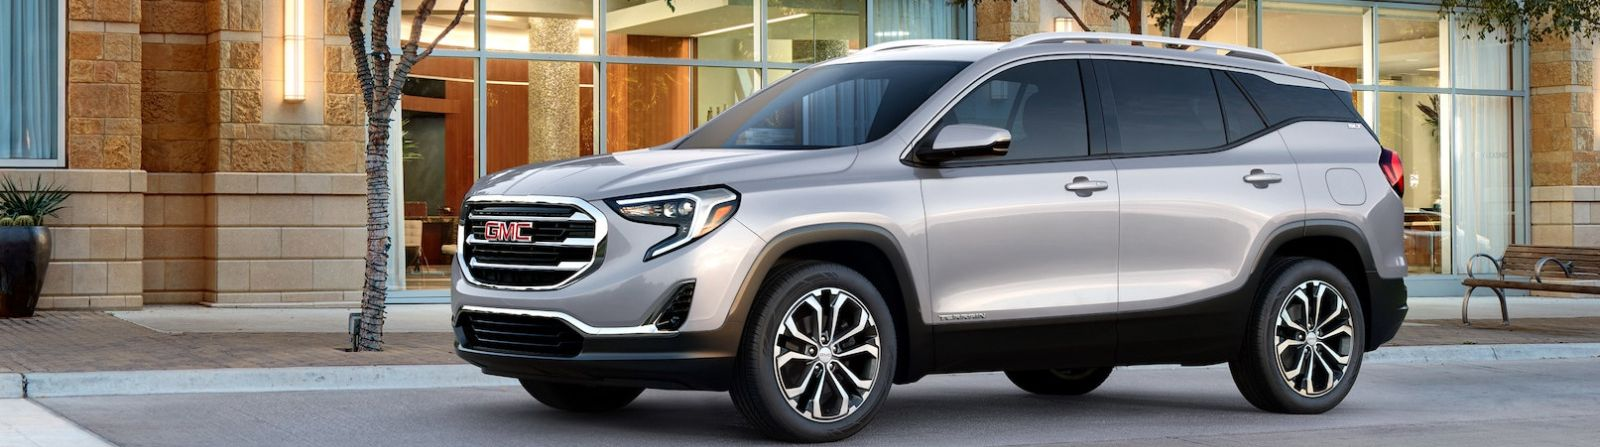 2018 GMC Terrain for Sale in Taylor, MI